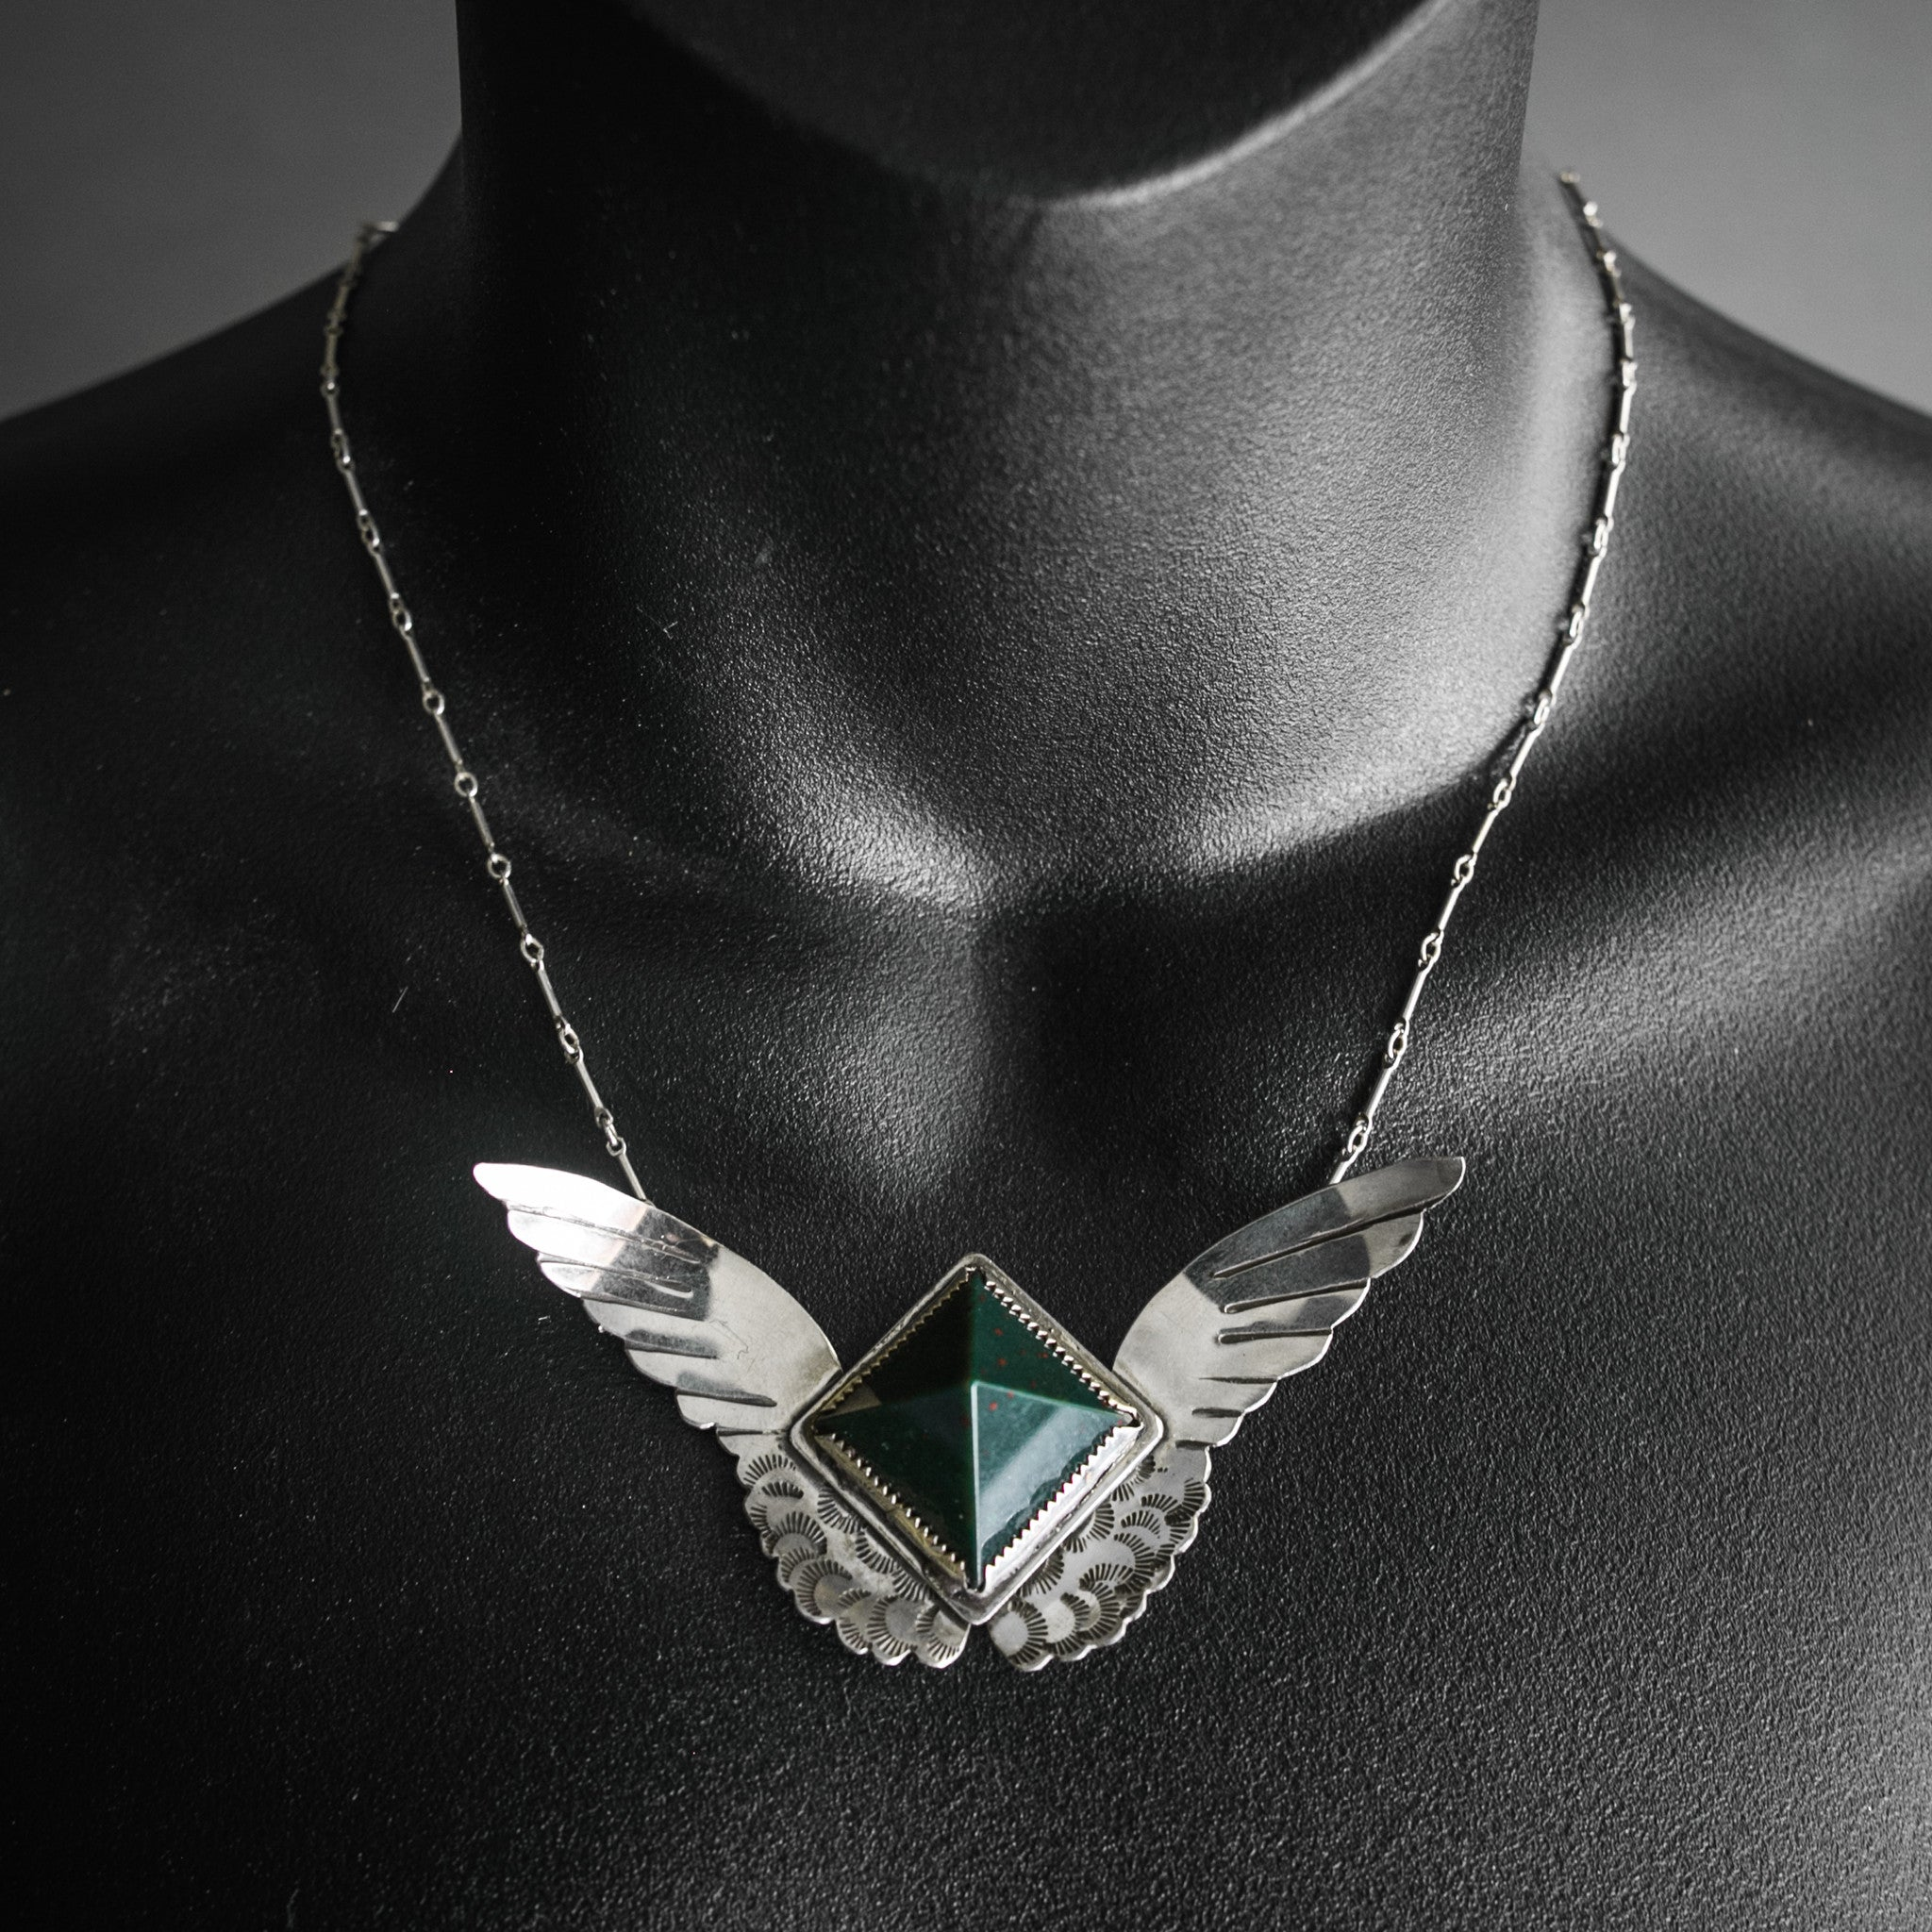 Harpy Necklace - Bloodstone and Sterling Wings, Jewelry, Morgaine Faye - Altar PDX